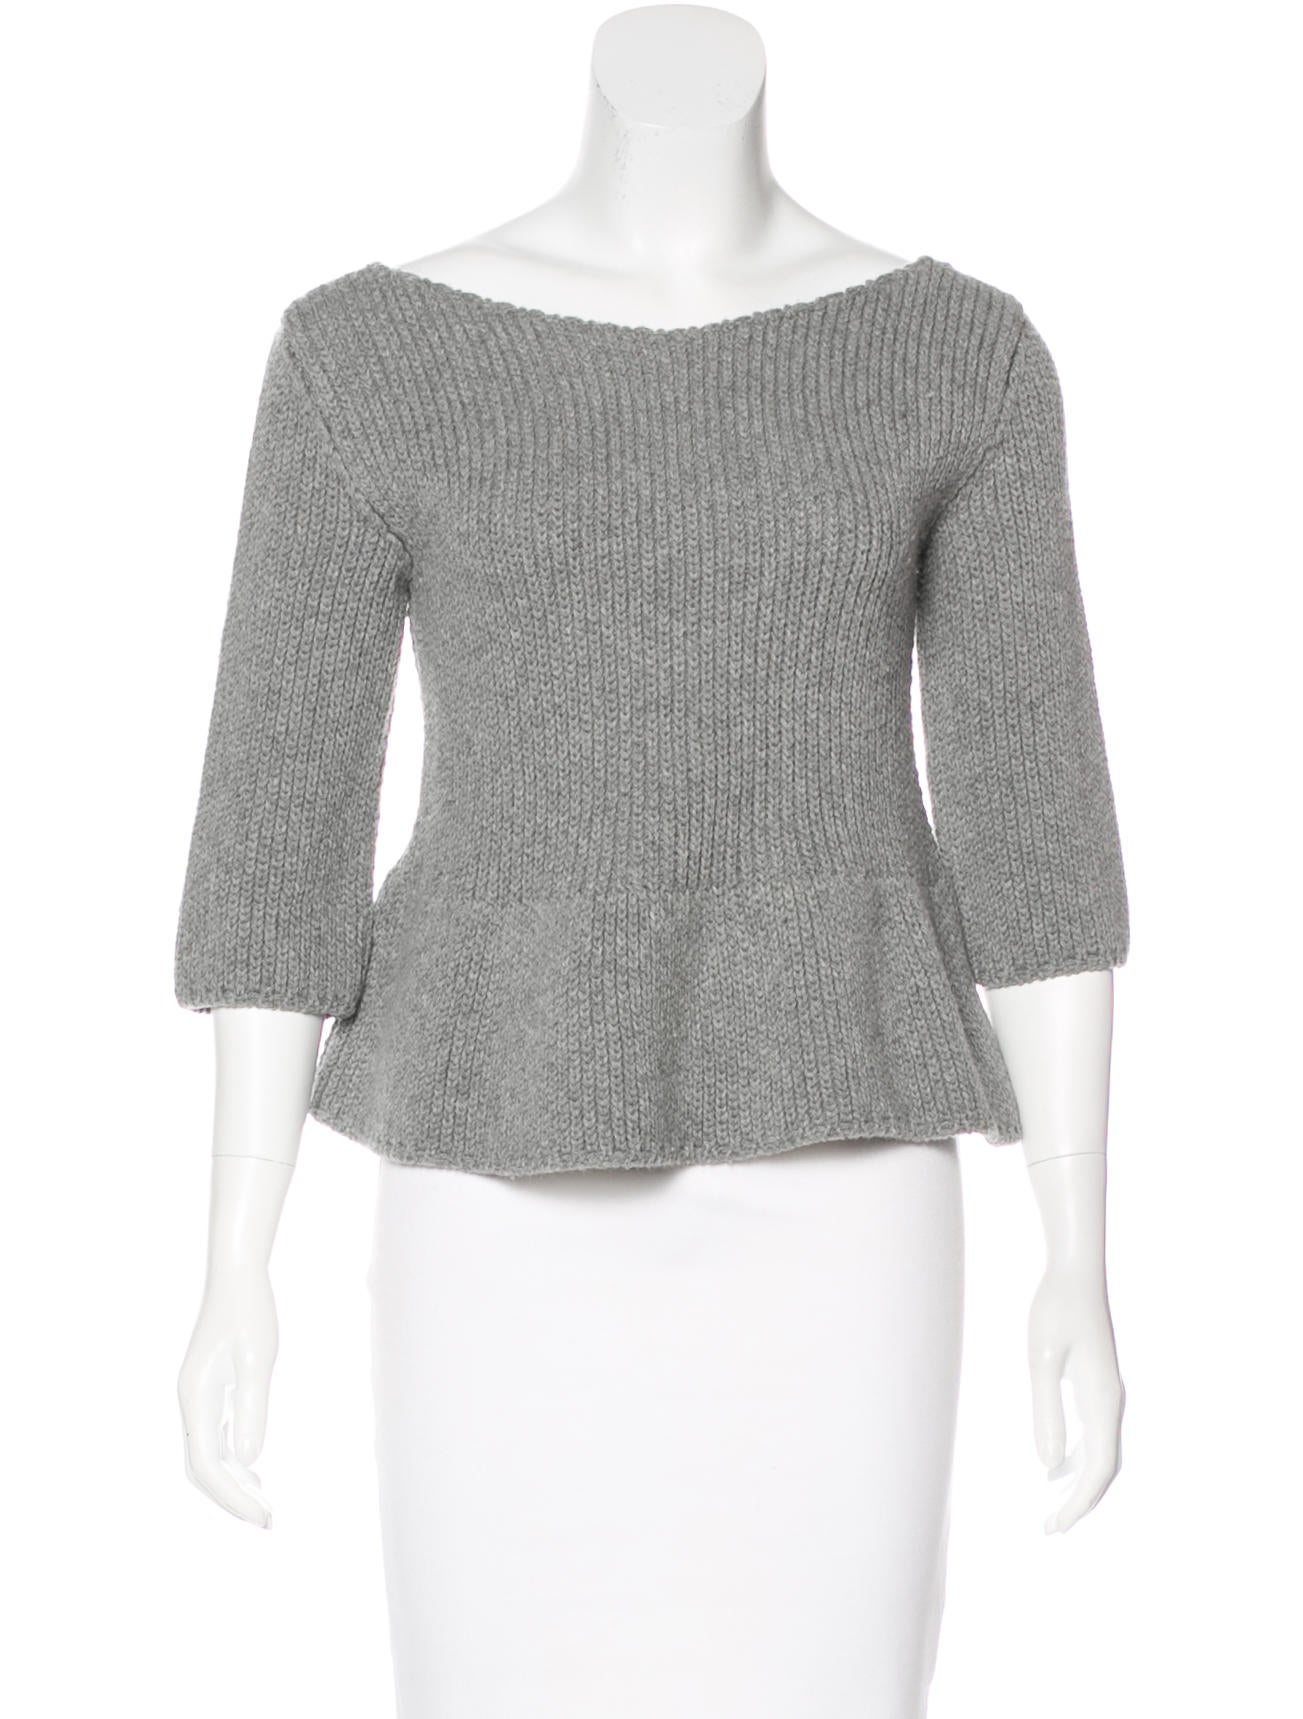 Hache Wool Cropped Sweater - Clothing - WH421708 | The RealReal